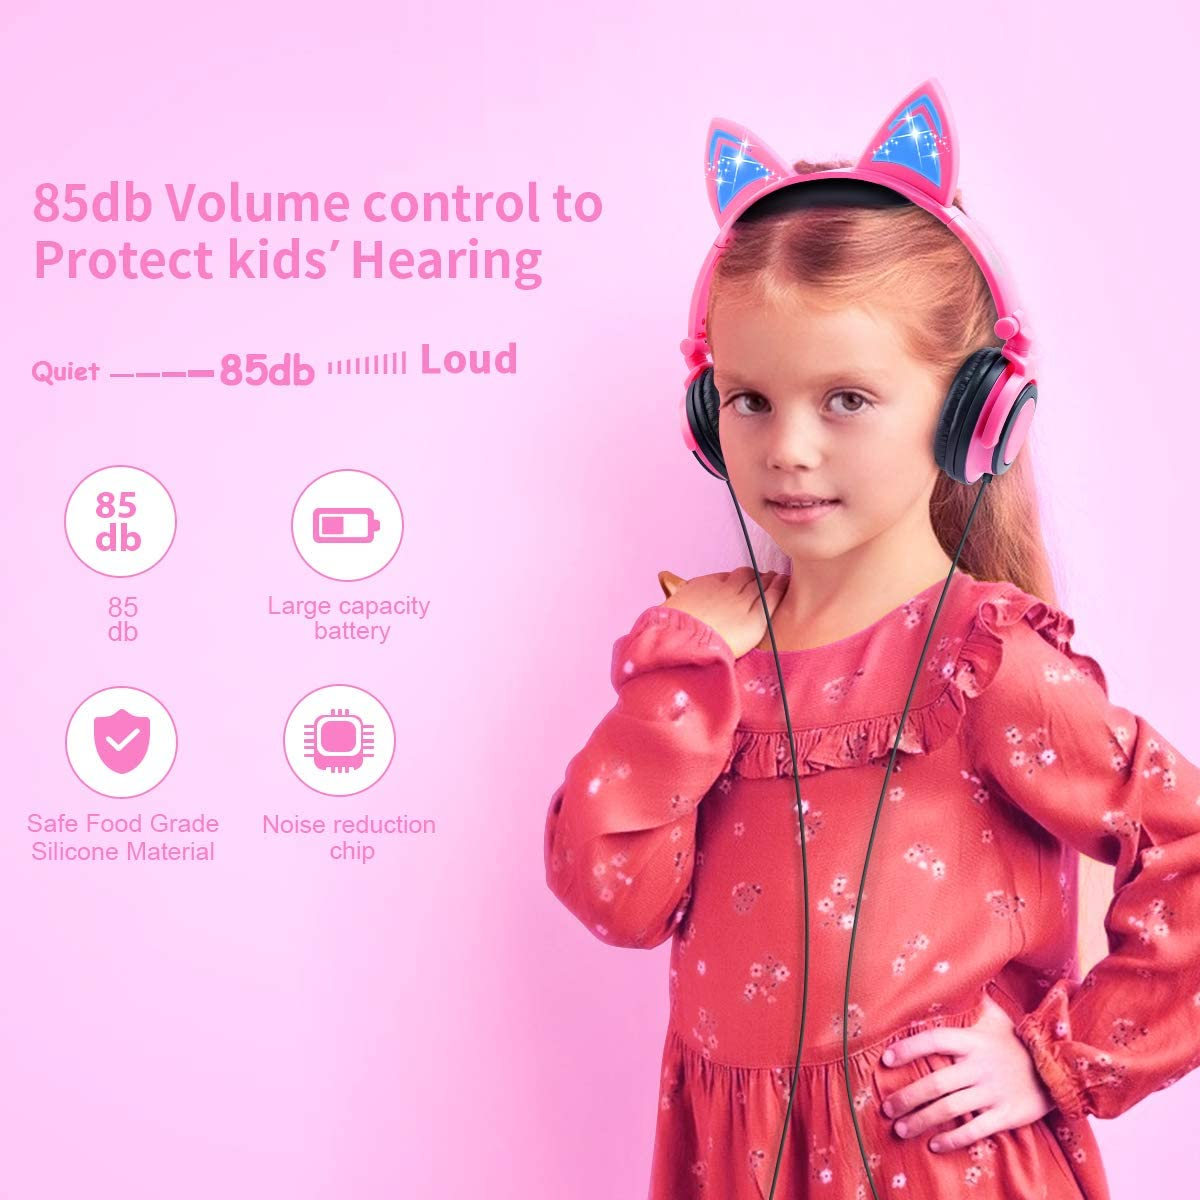 LOBKIN Foldable Wired Over Ear Kids Headphone With Glowing Light For Girls Children Cosplay Fans,Cat Ear Headphones (Pink)